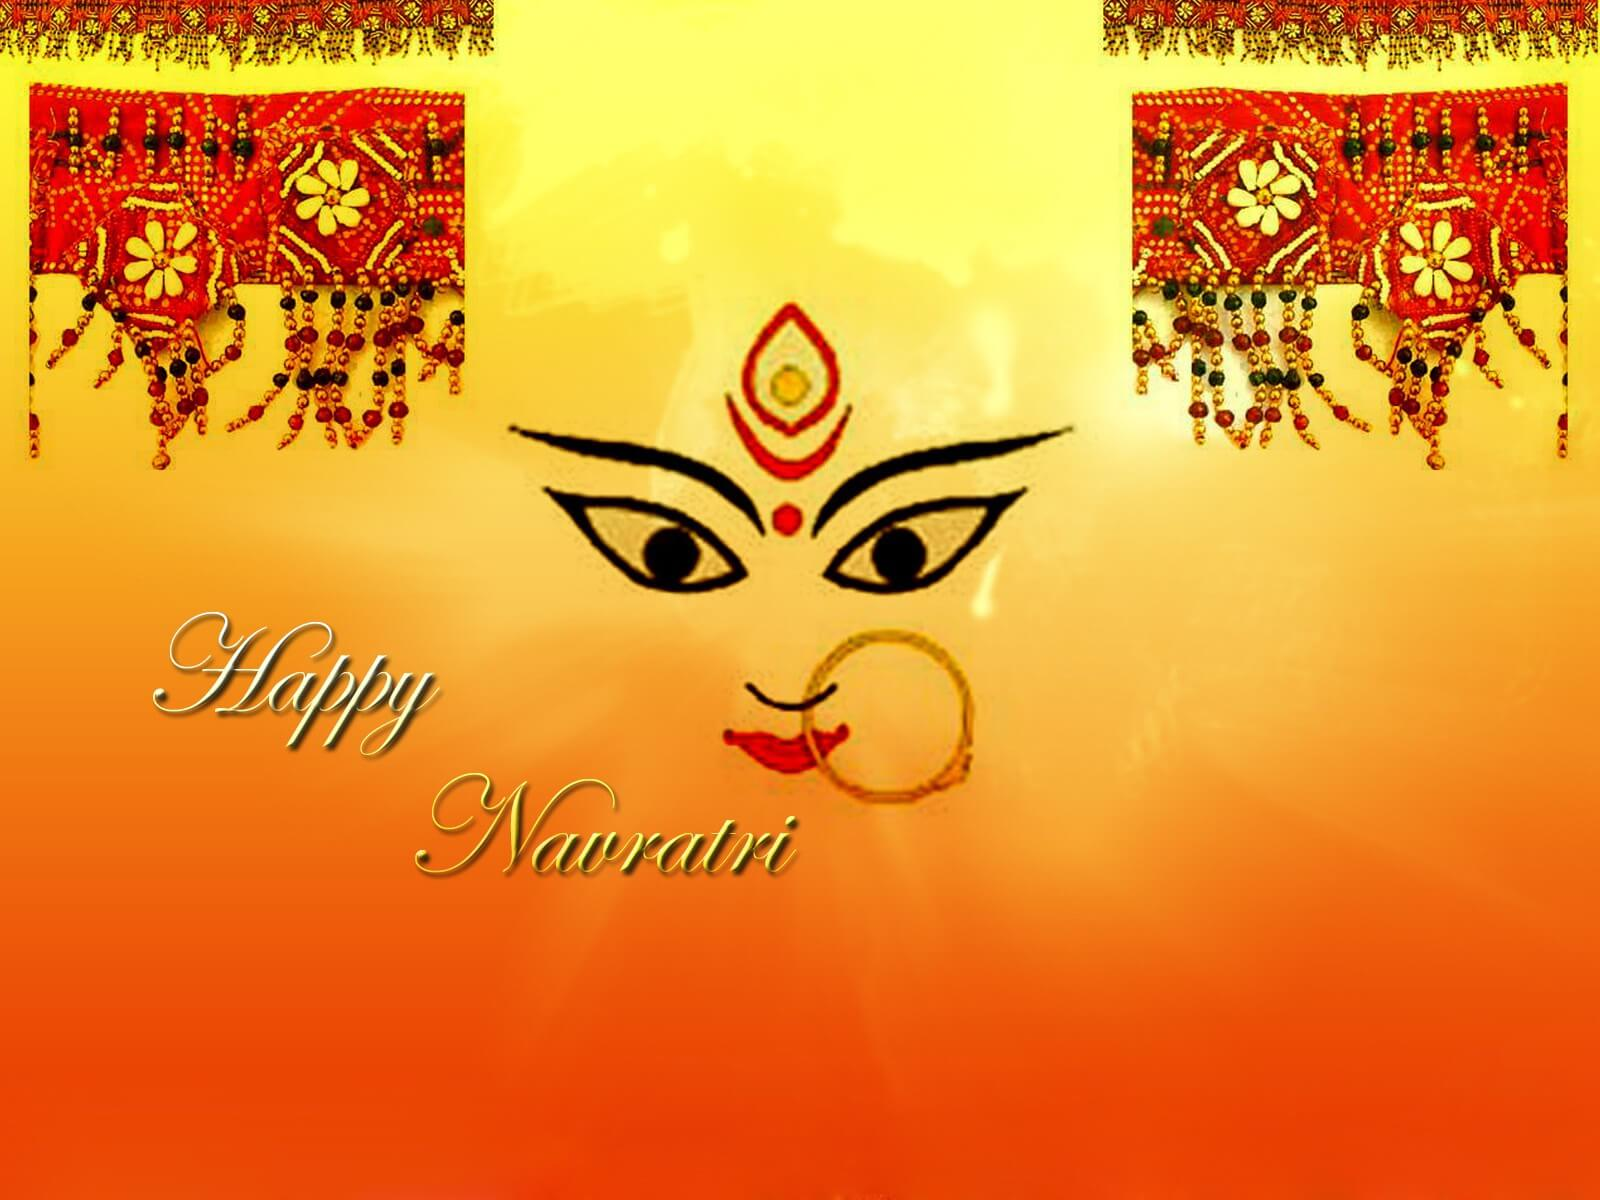 Happy navratri wishes images quotes sms hd wallpapers 2018 happy navratri wishes wallpaper greeting images m4hsunfo